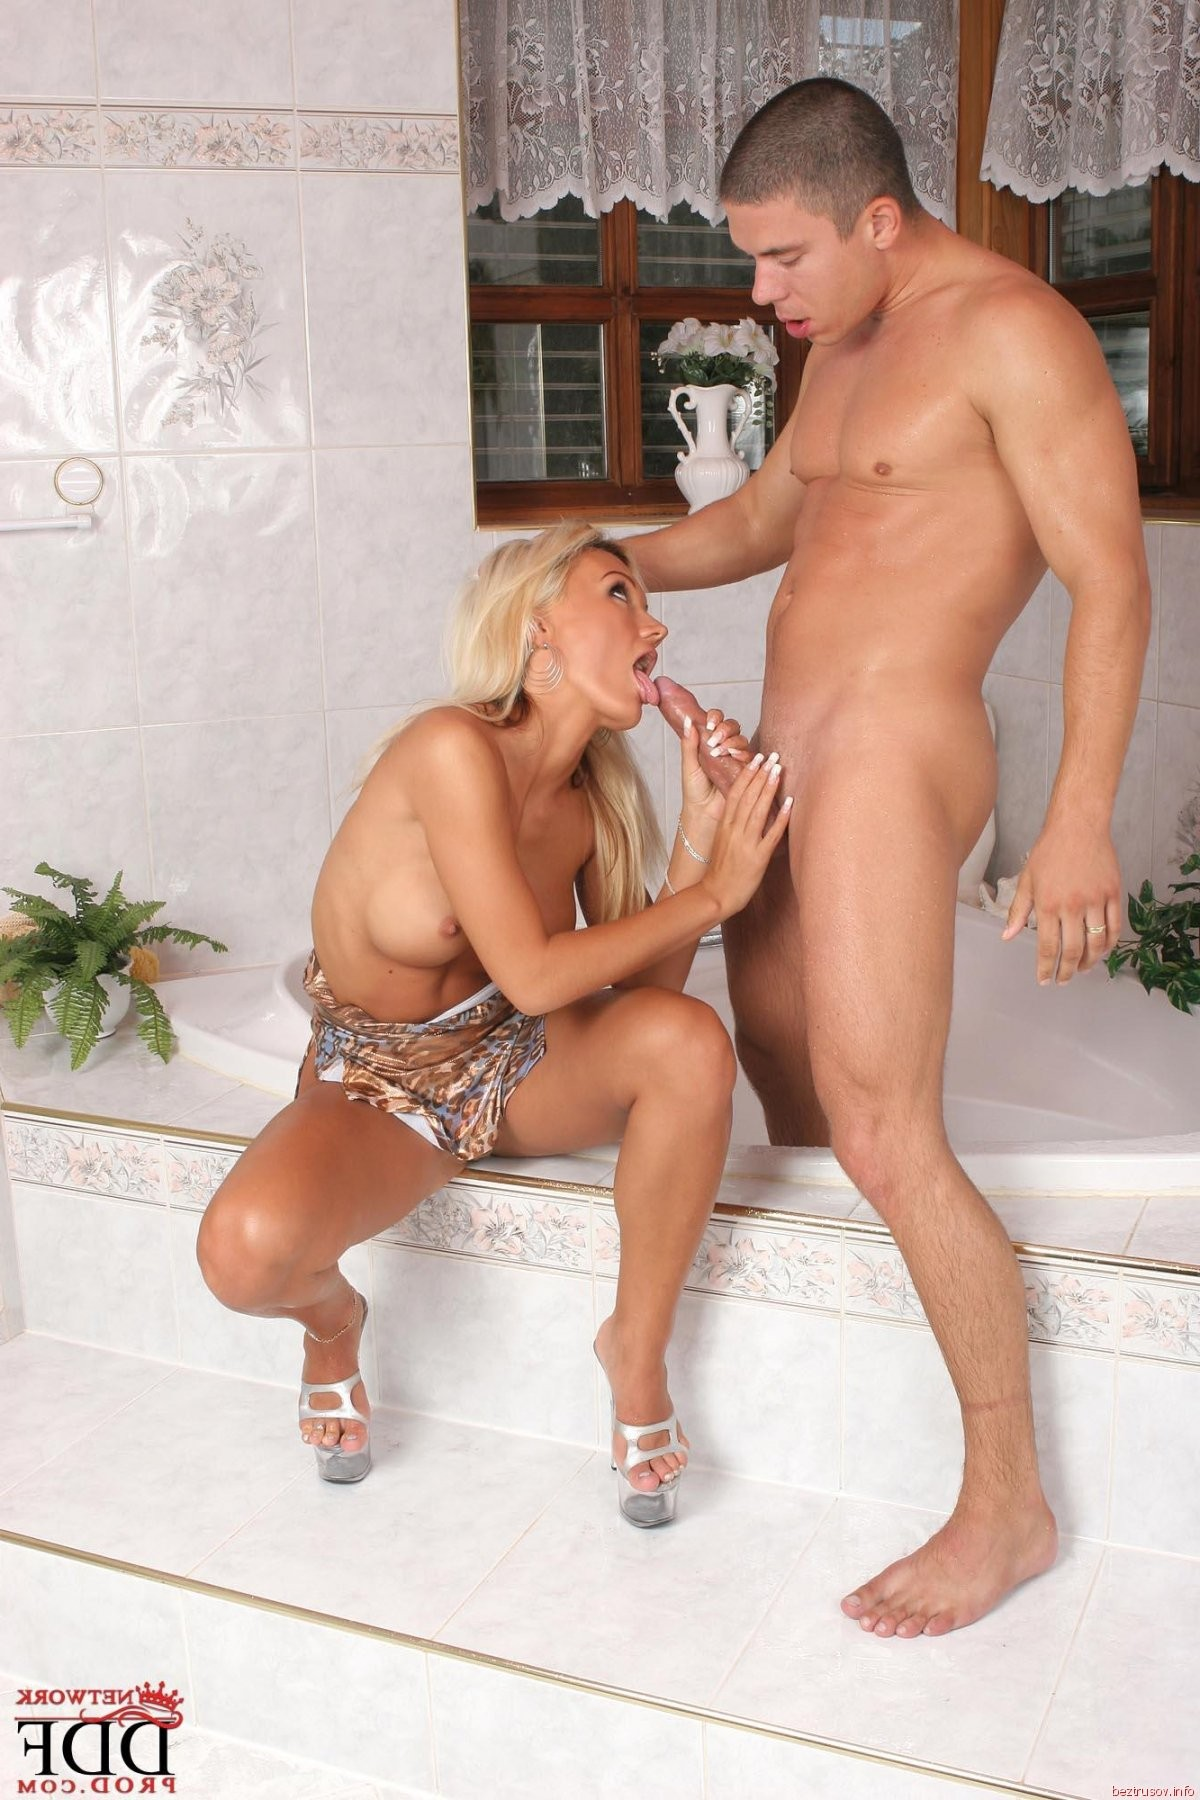 mmf european blonde threesome by the pool – Domina